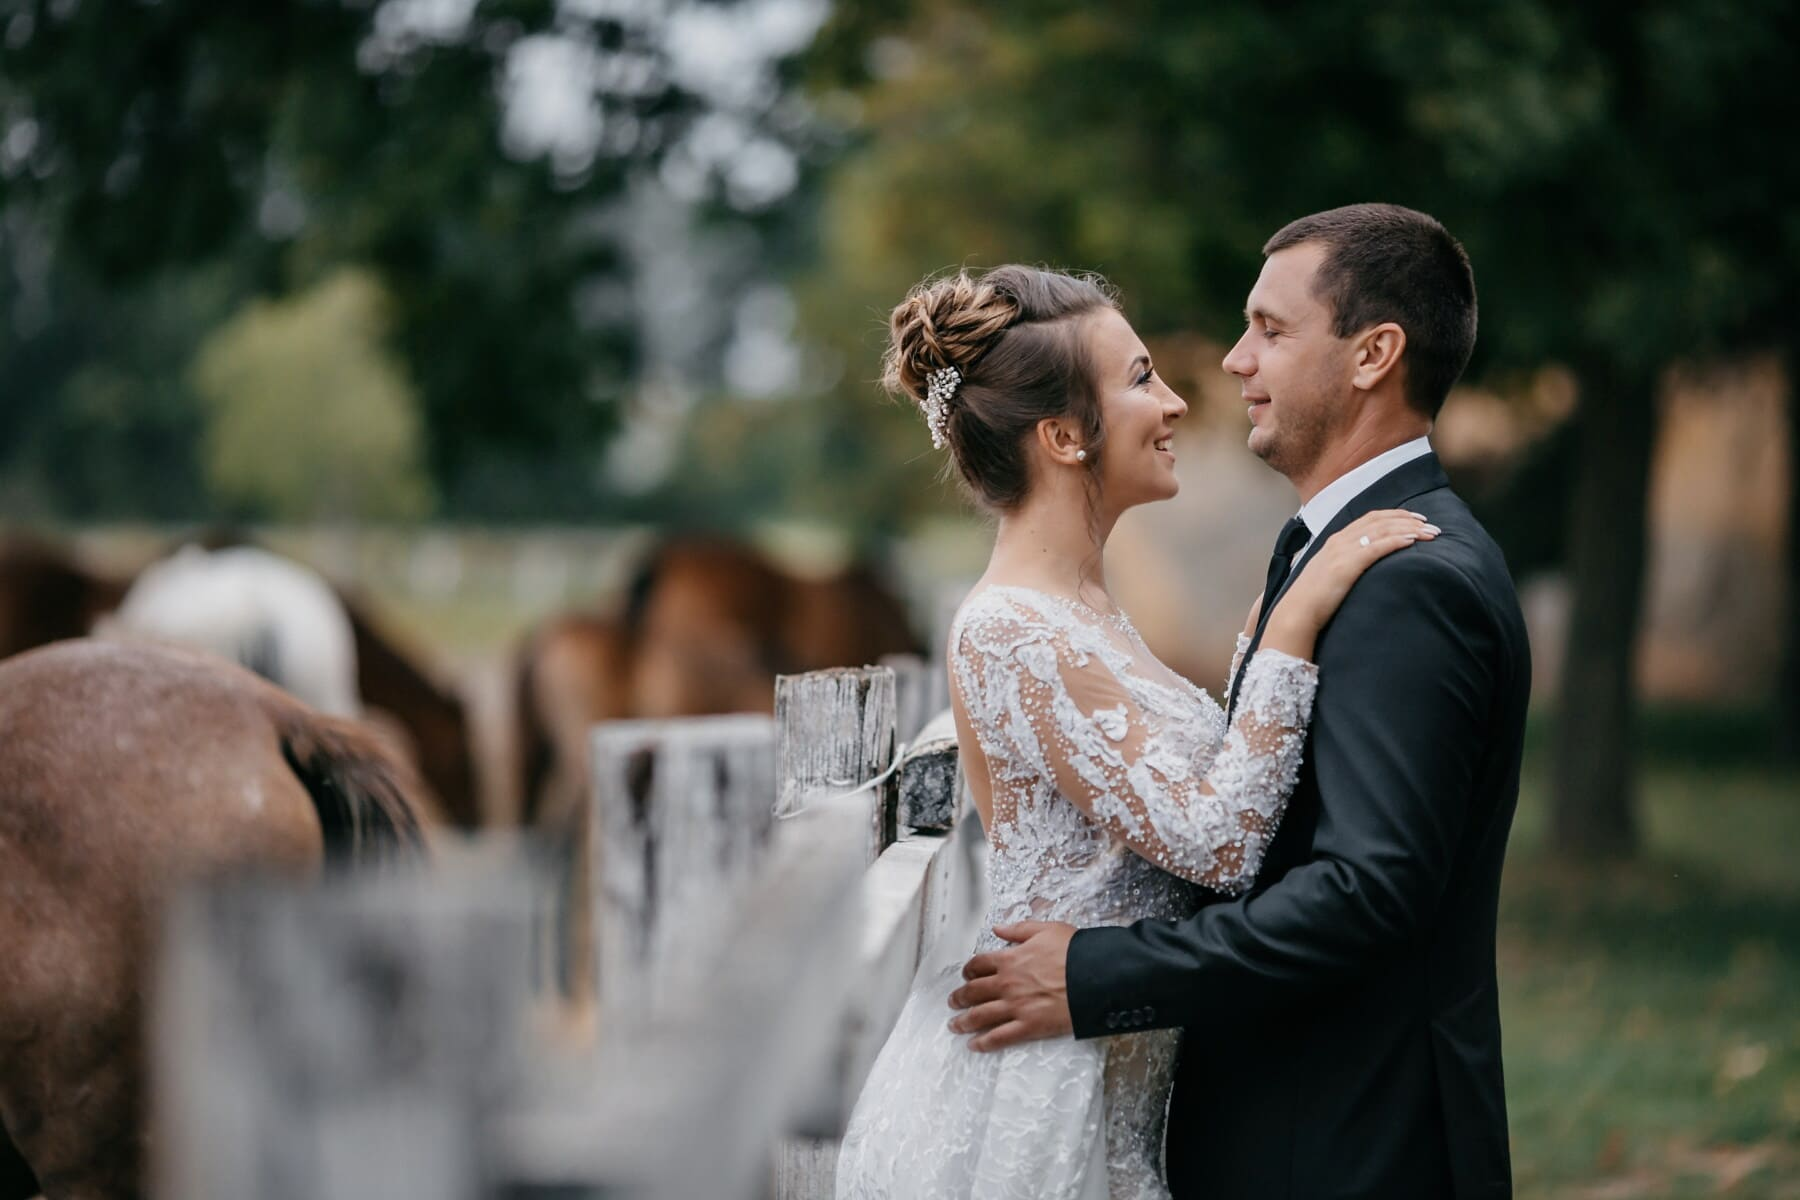 bride, village, groom, farmland, horses, love, couple, married, dress, marriage